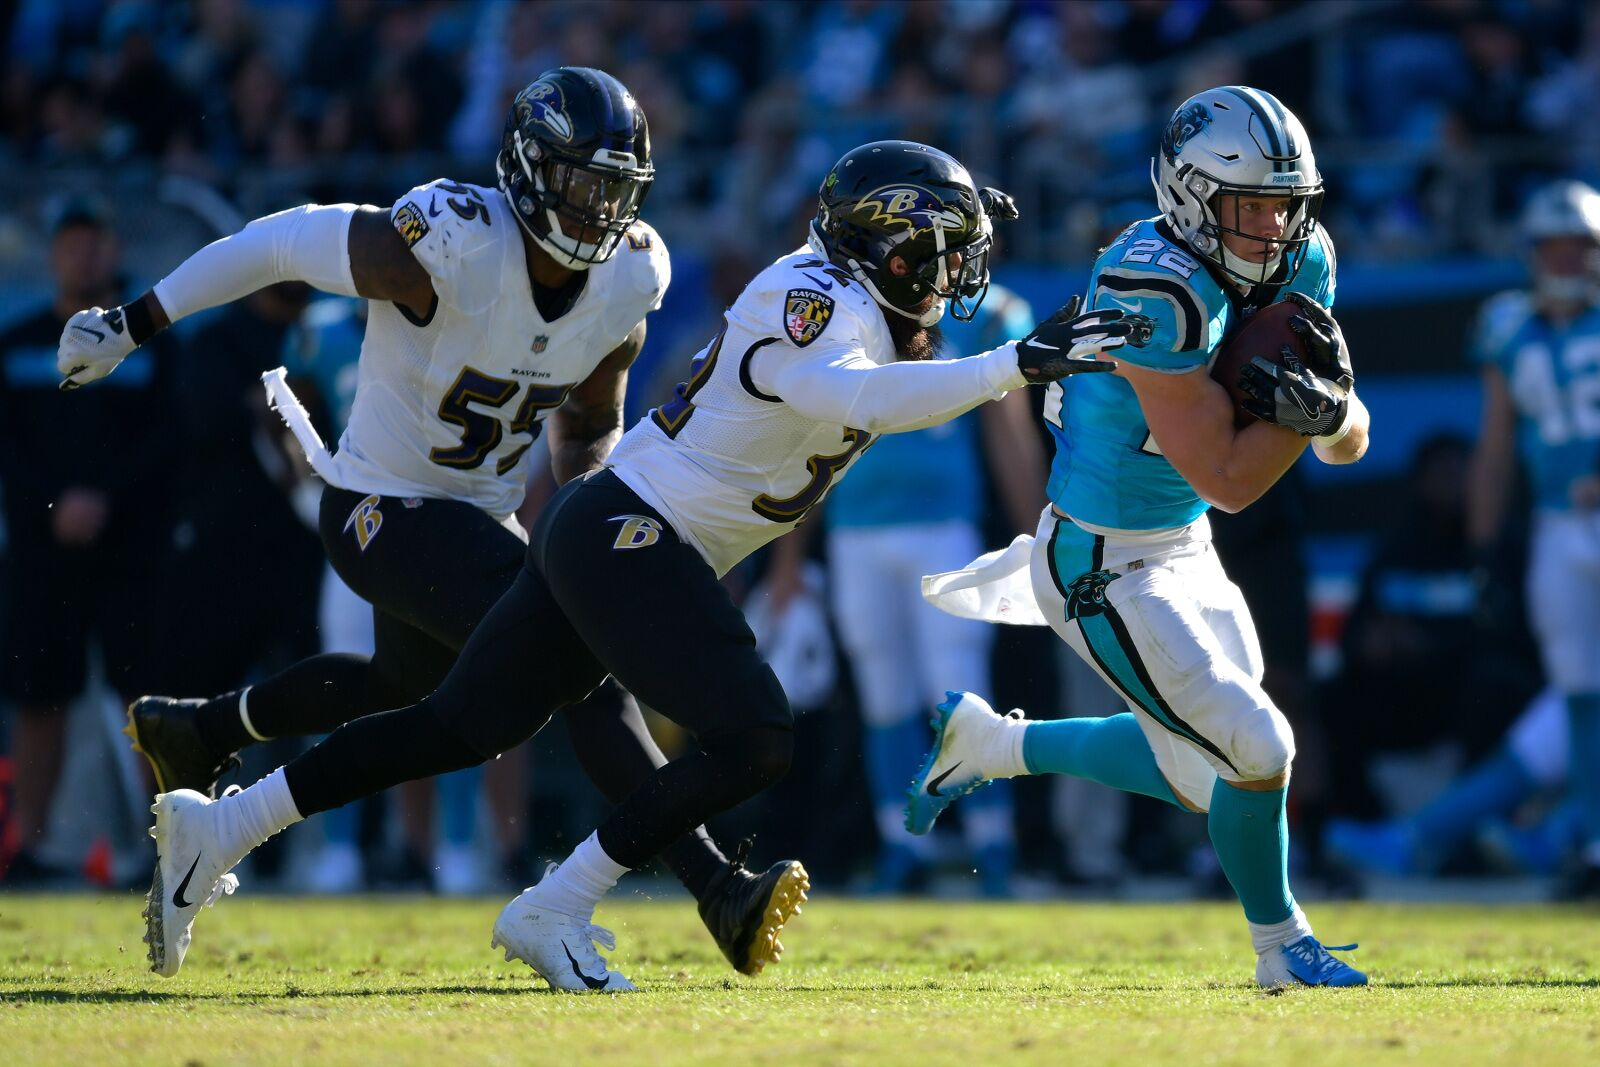 Carolina Panthers: Christian McCaffrey should be put in MVP conversation